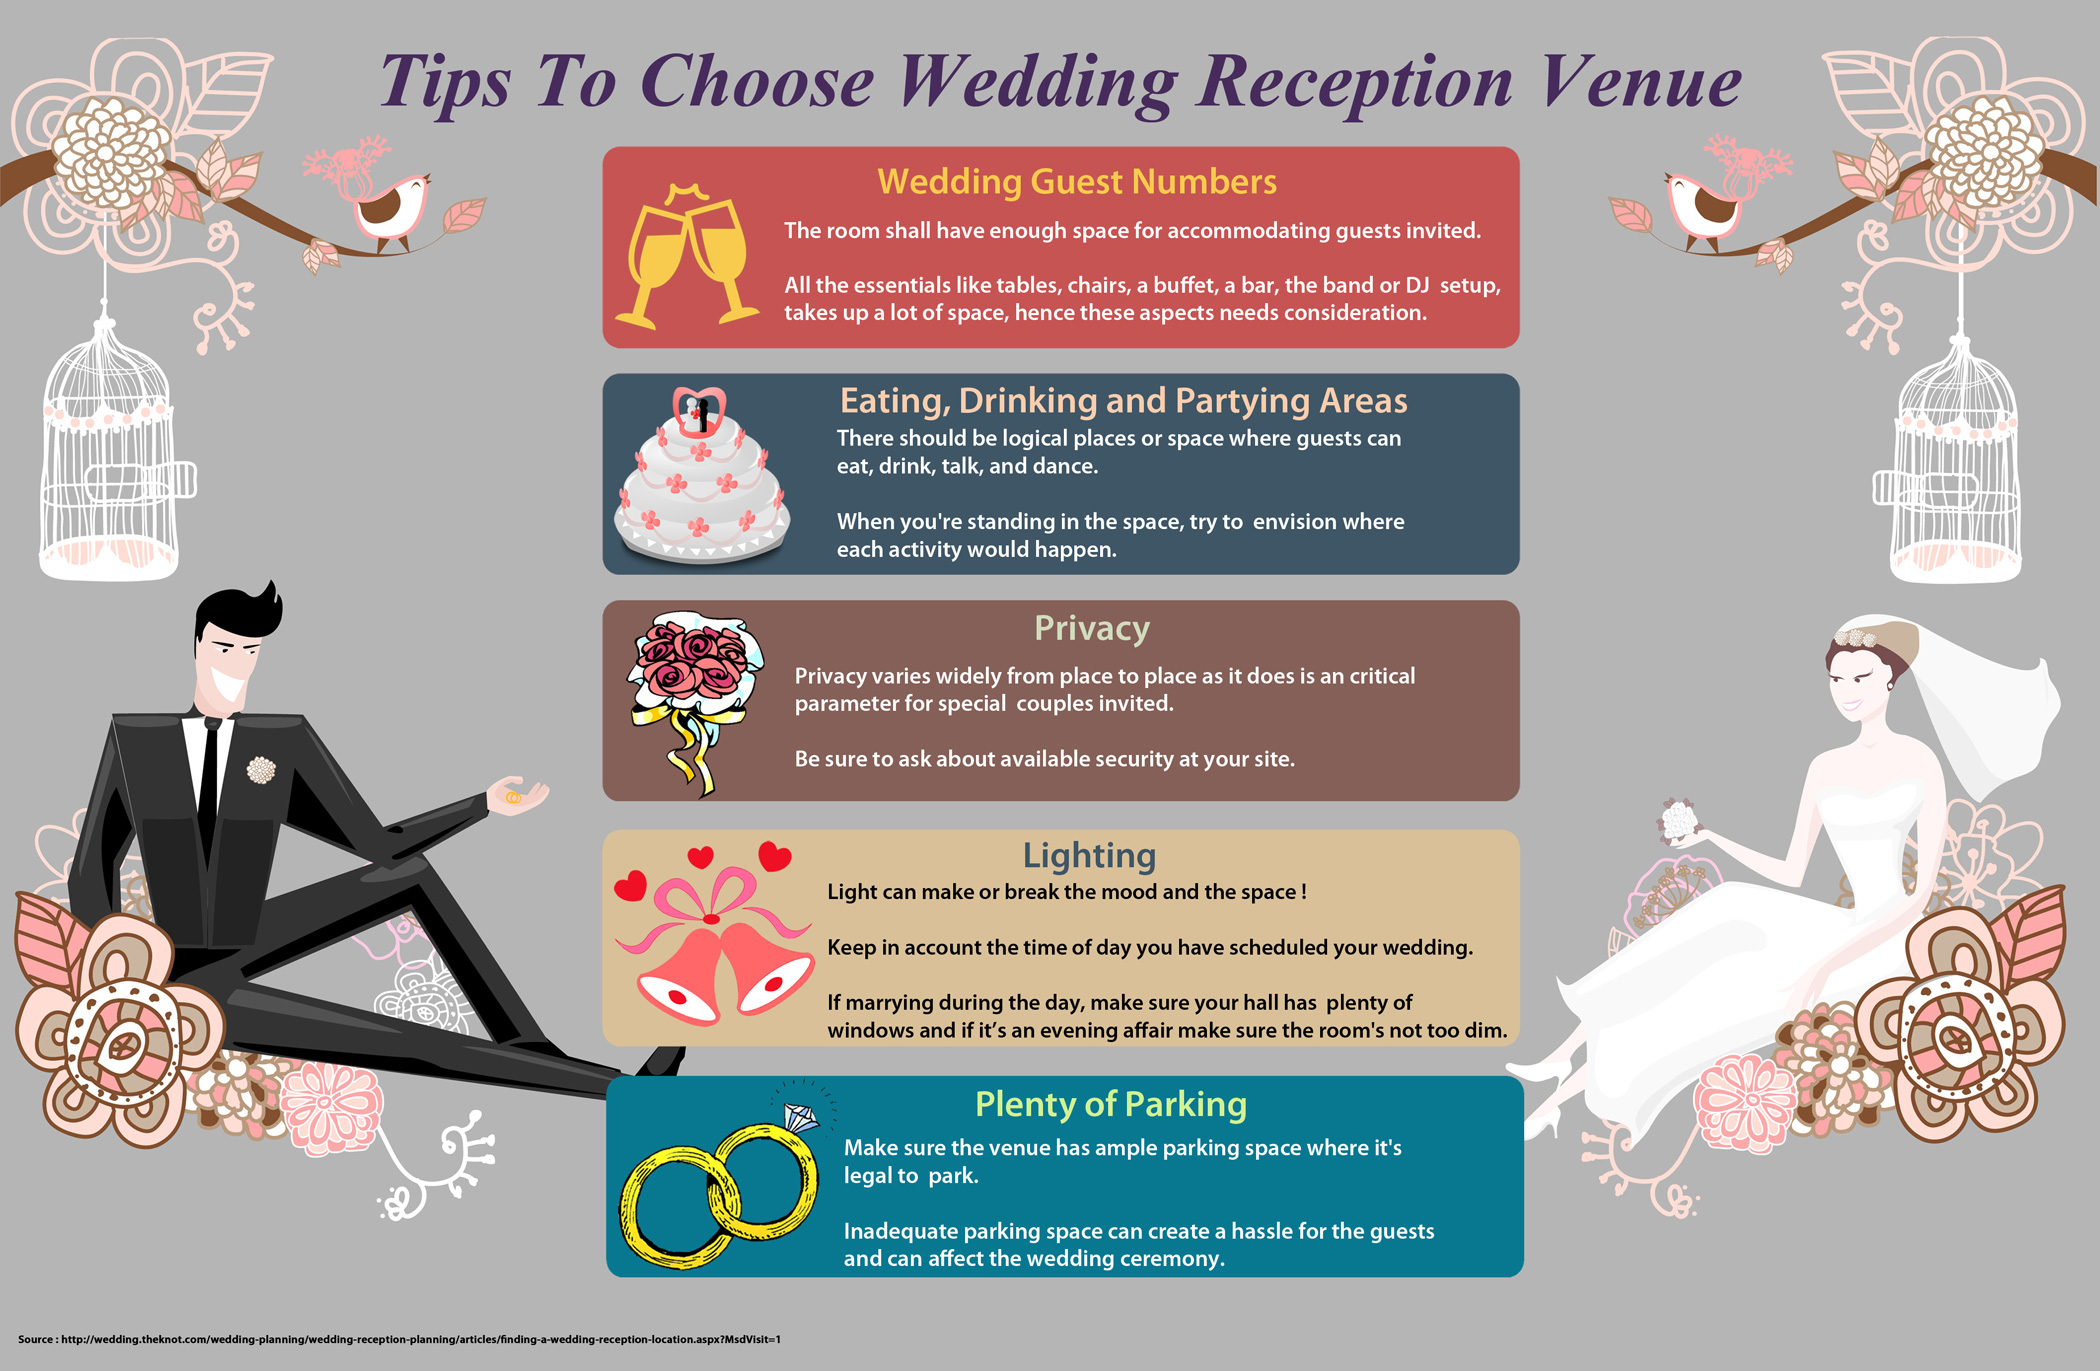 Tips To Choose Wedding reception Venue